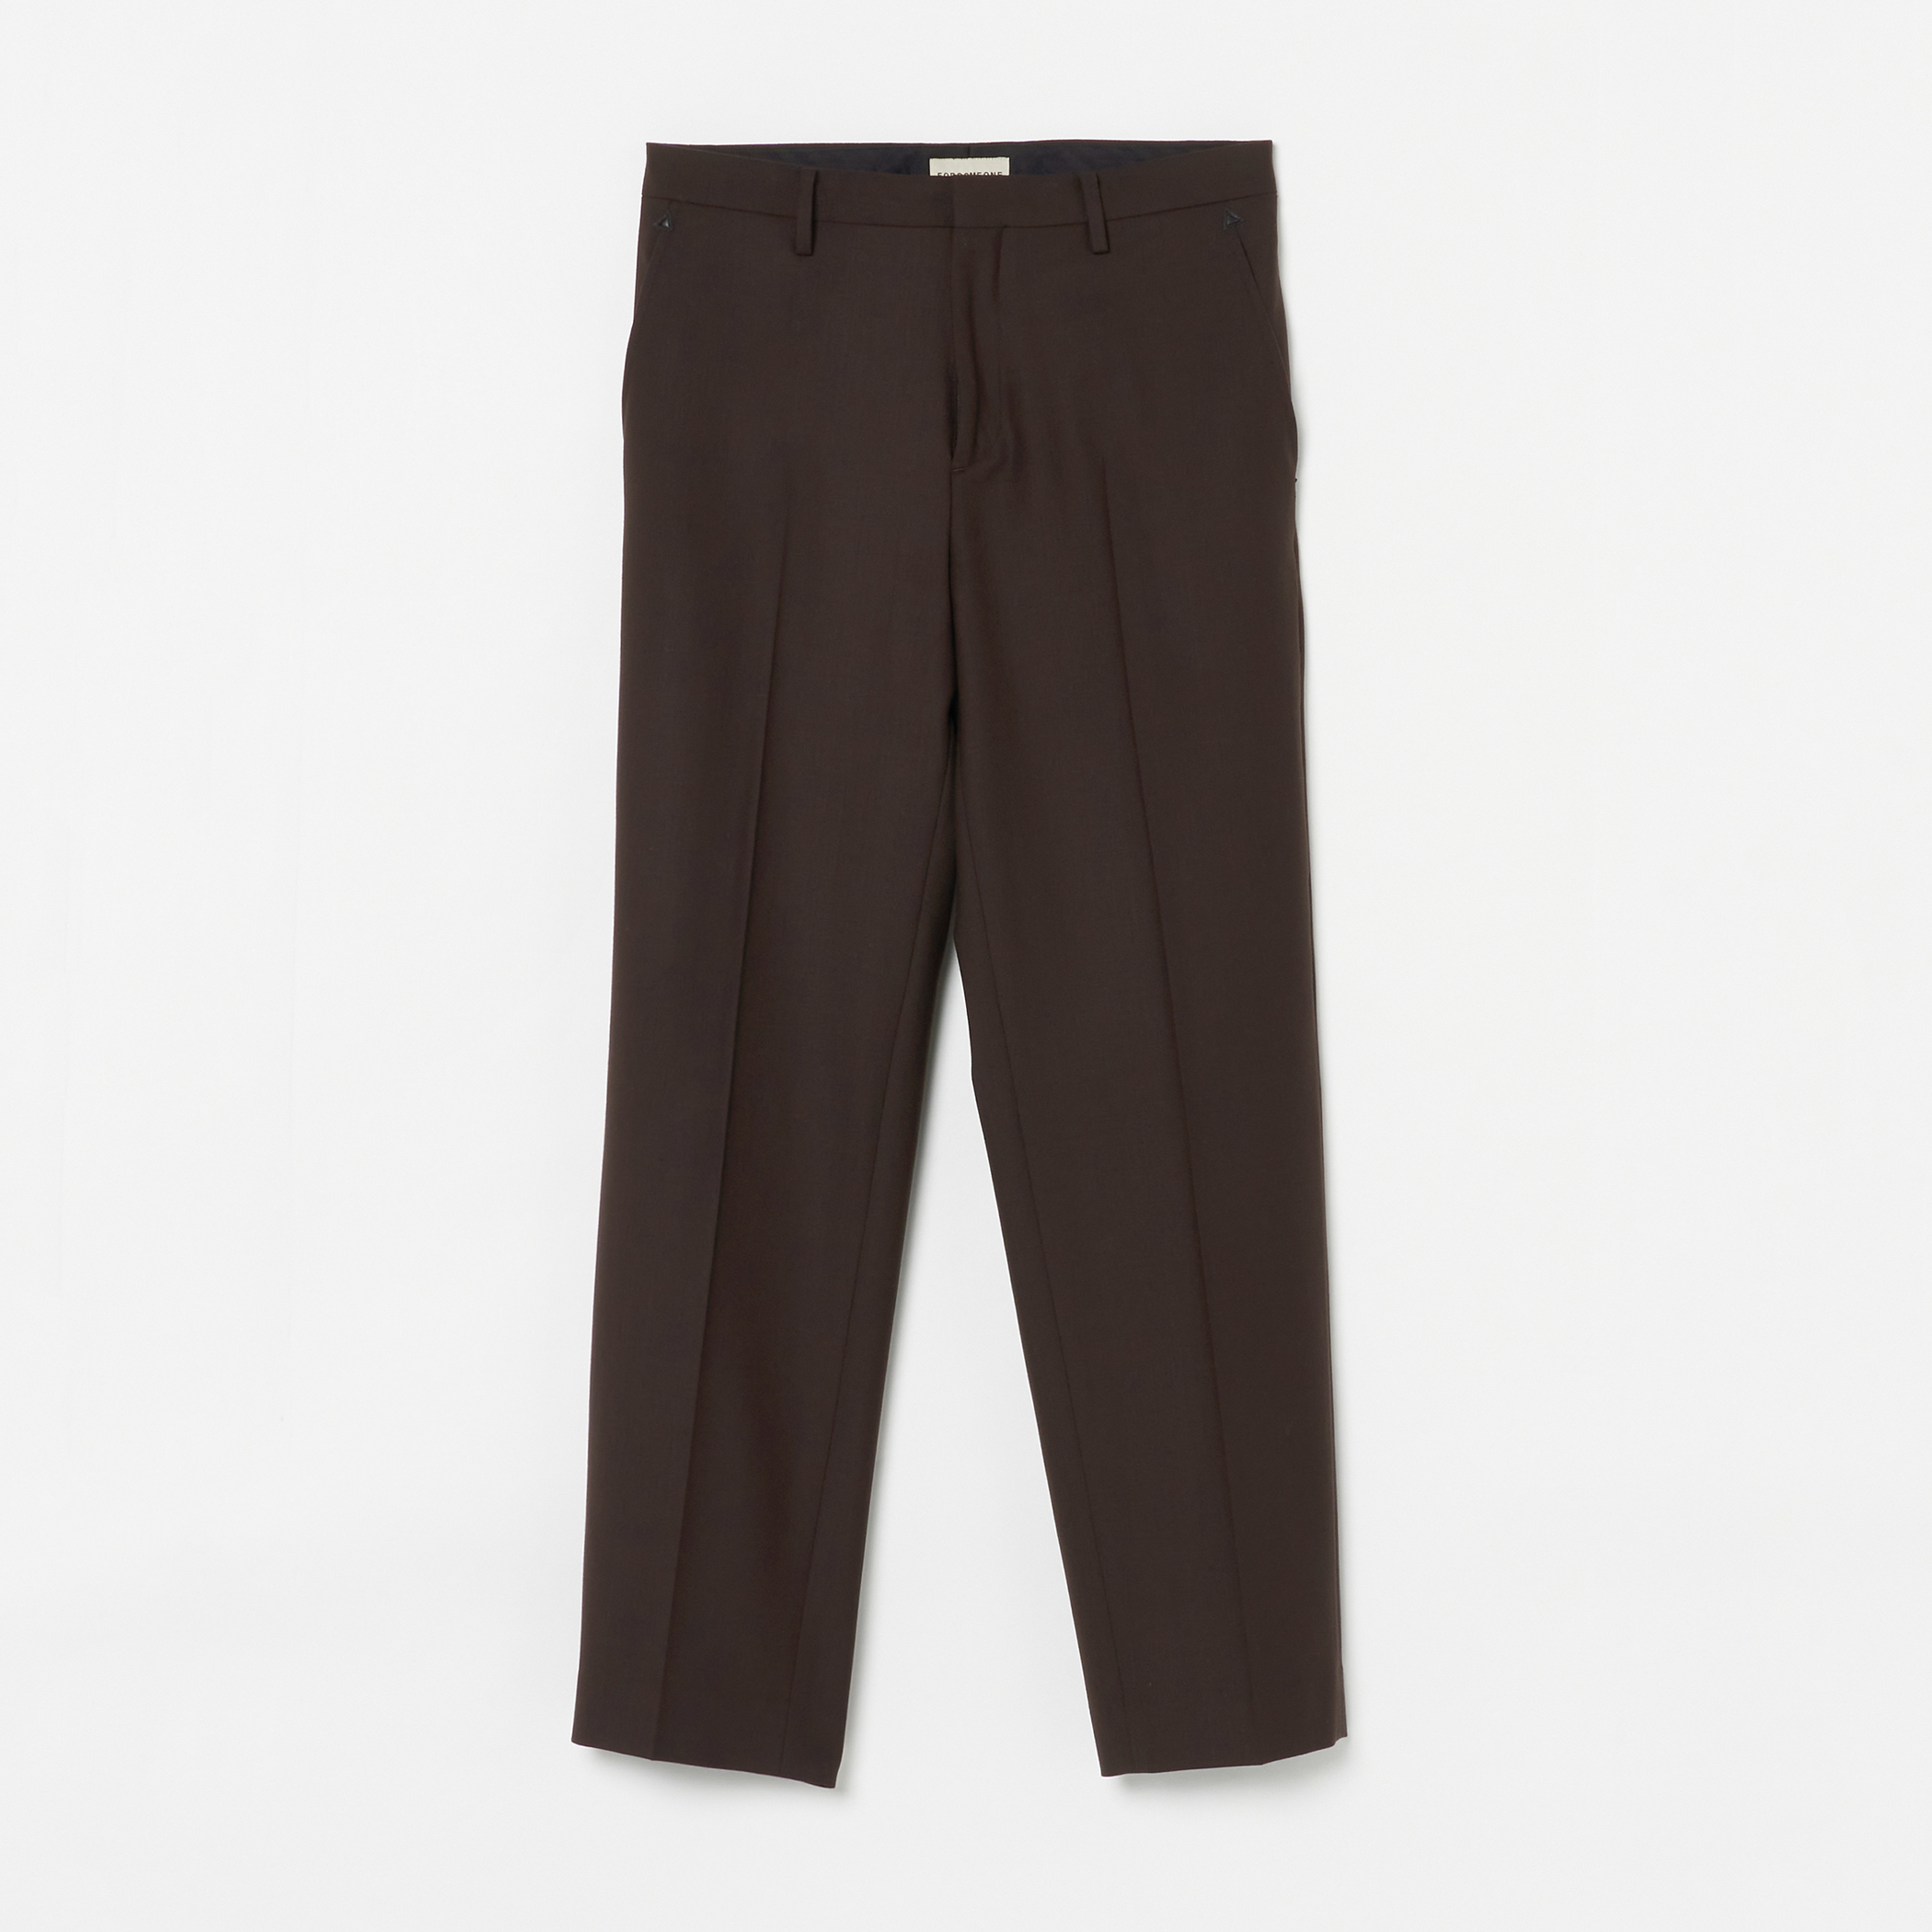 ADAM SUIT SOLID TROUSERS 詳細画像 Brown 1